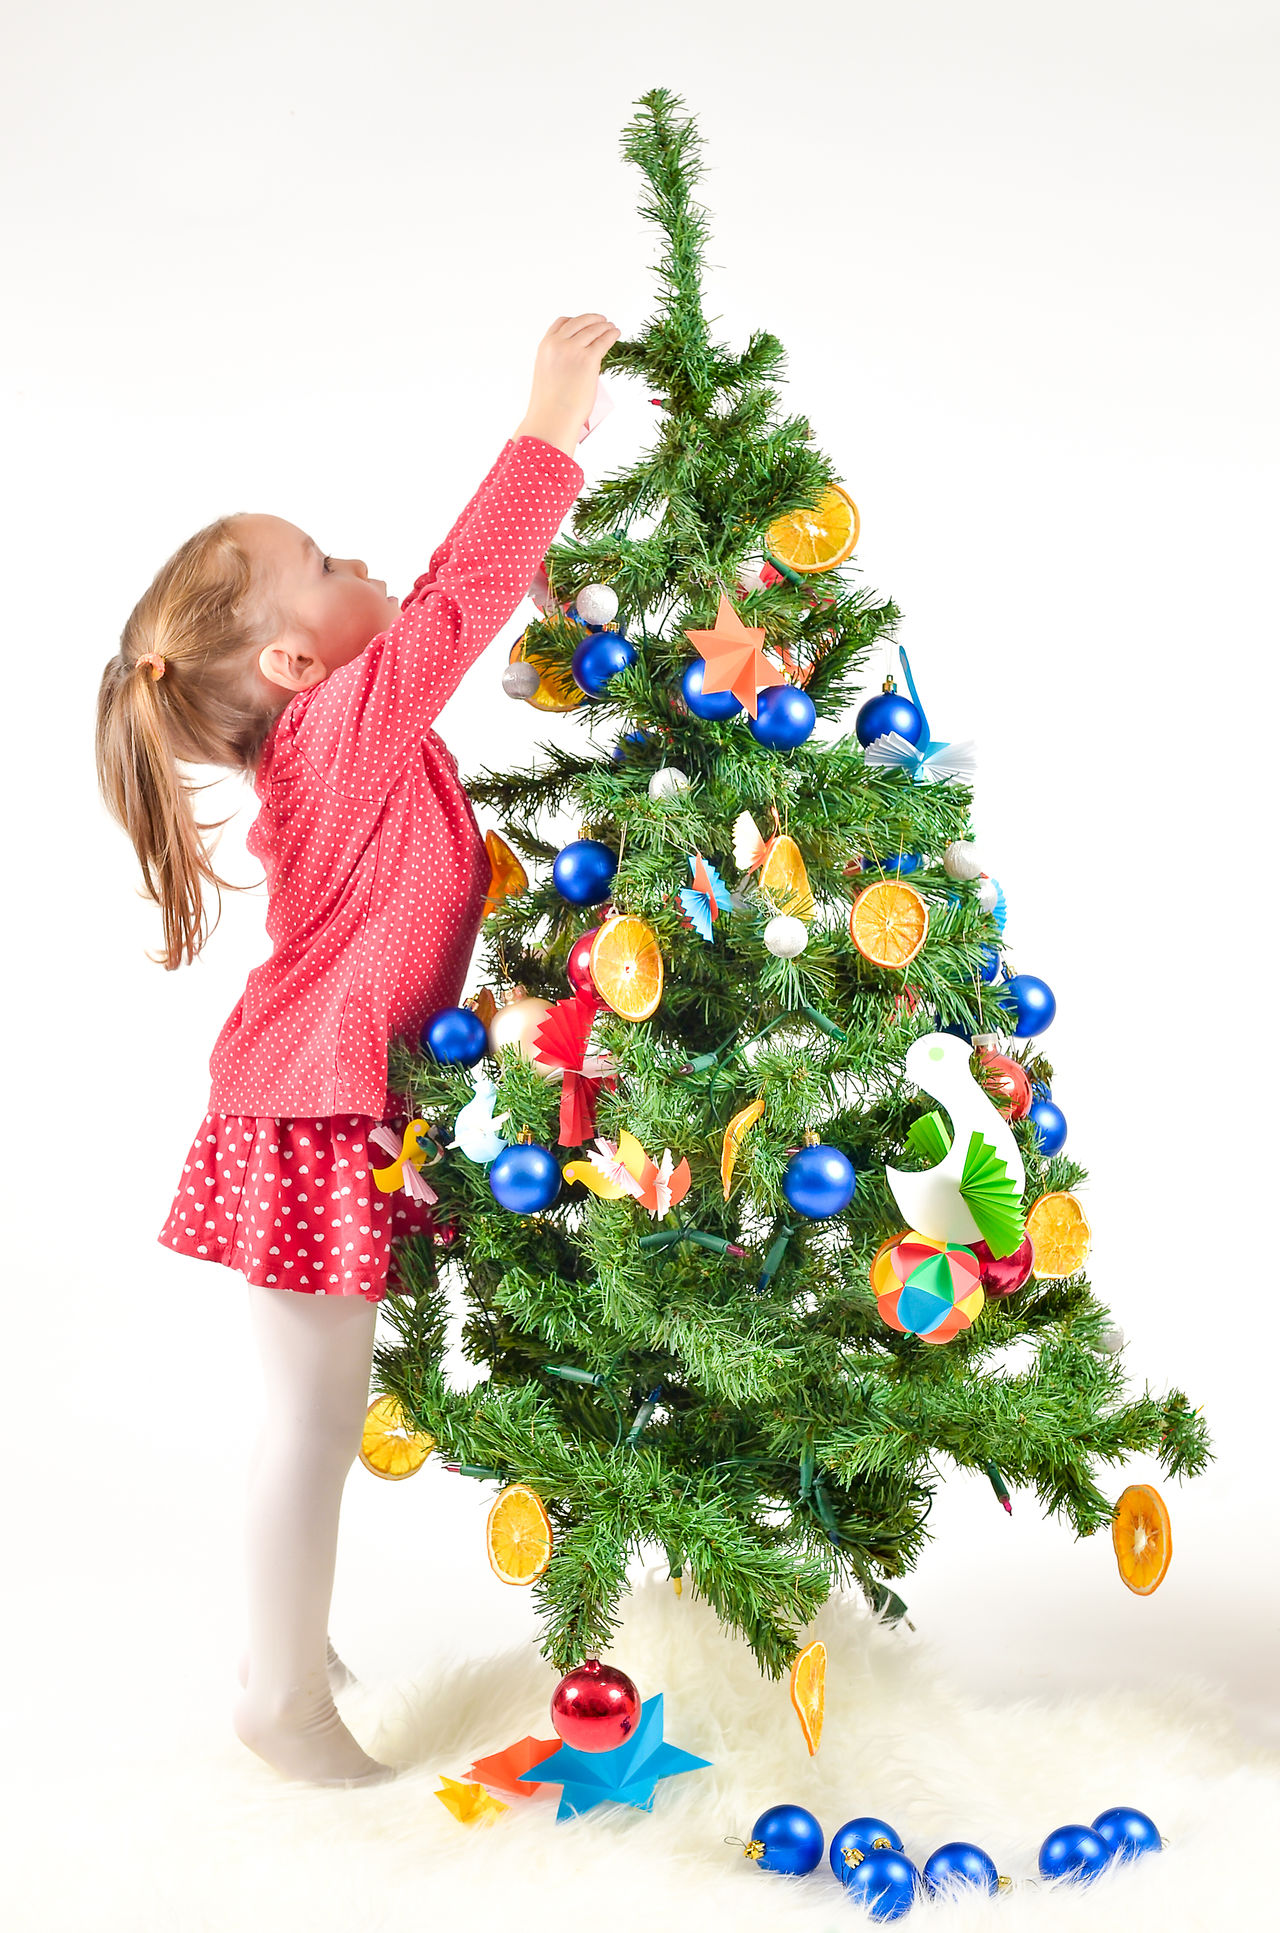 Beautiful stock photos of weihnachten,  2-3 Years,  Arms Raised,  Blond Hair,  Casual Clothing